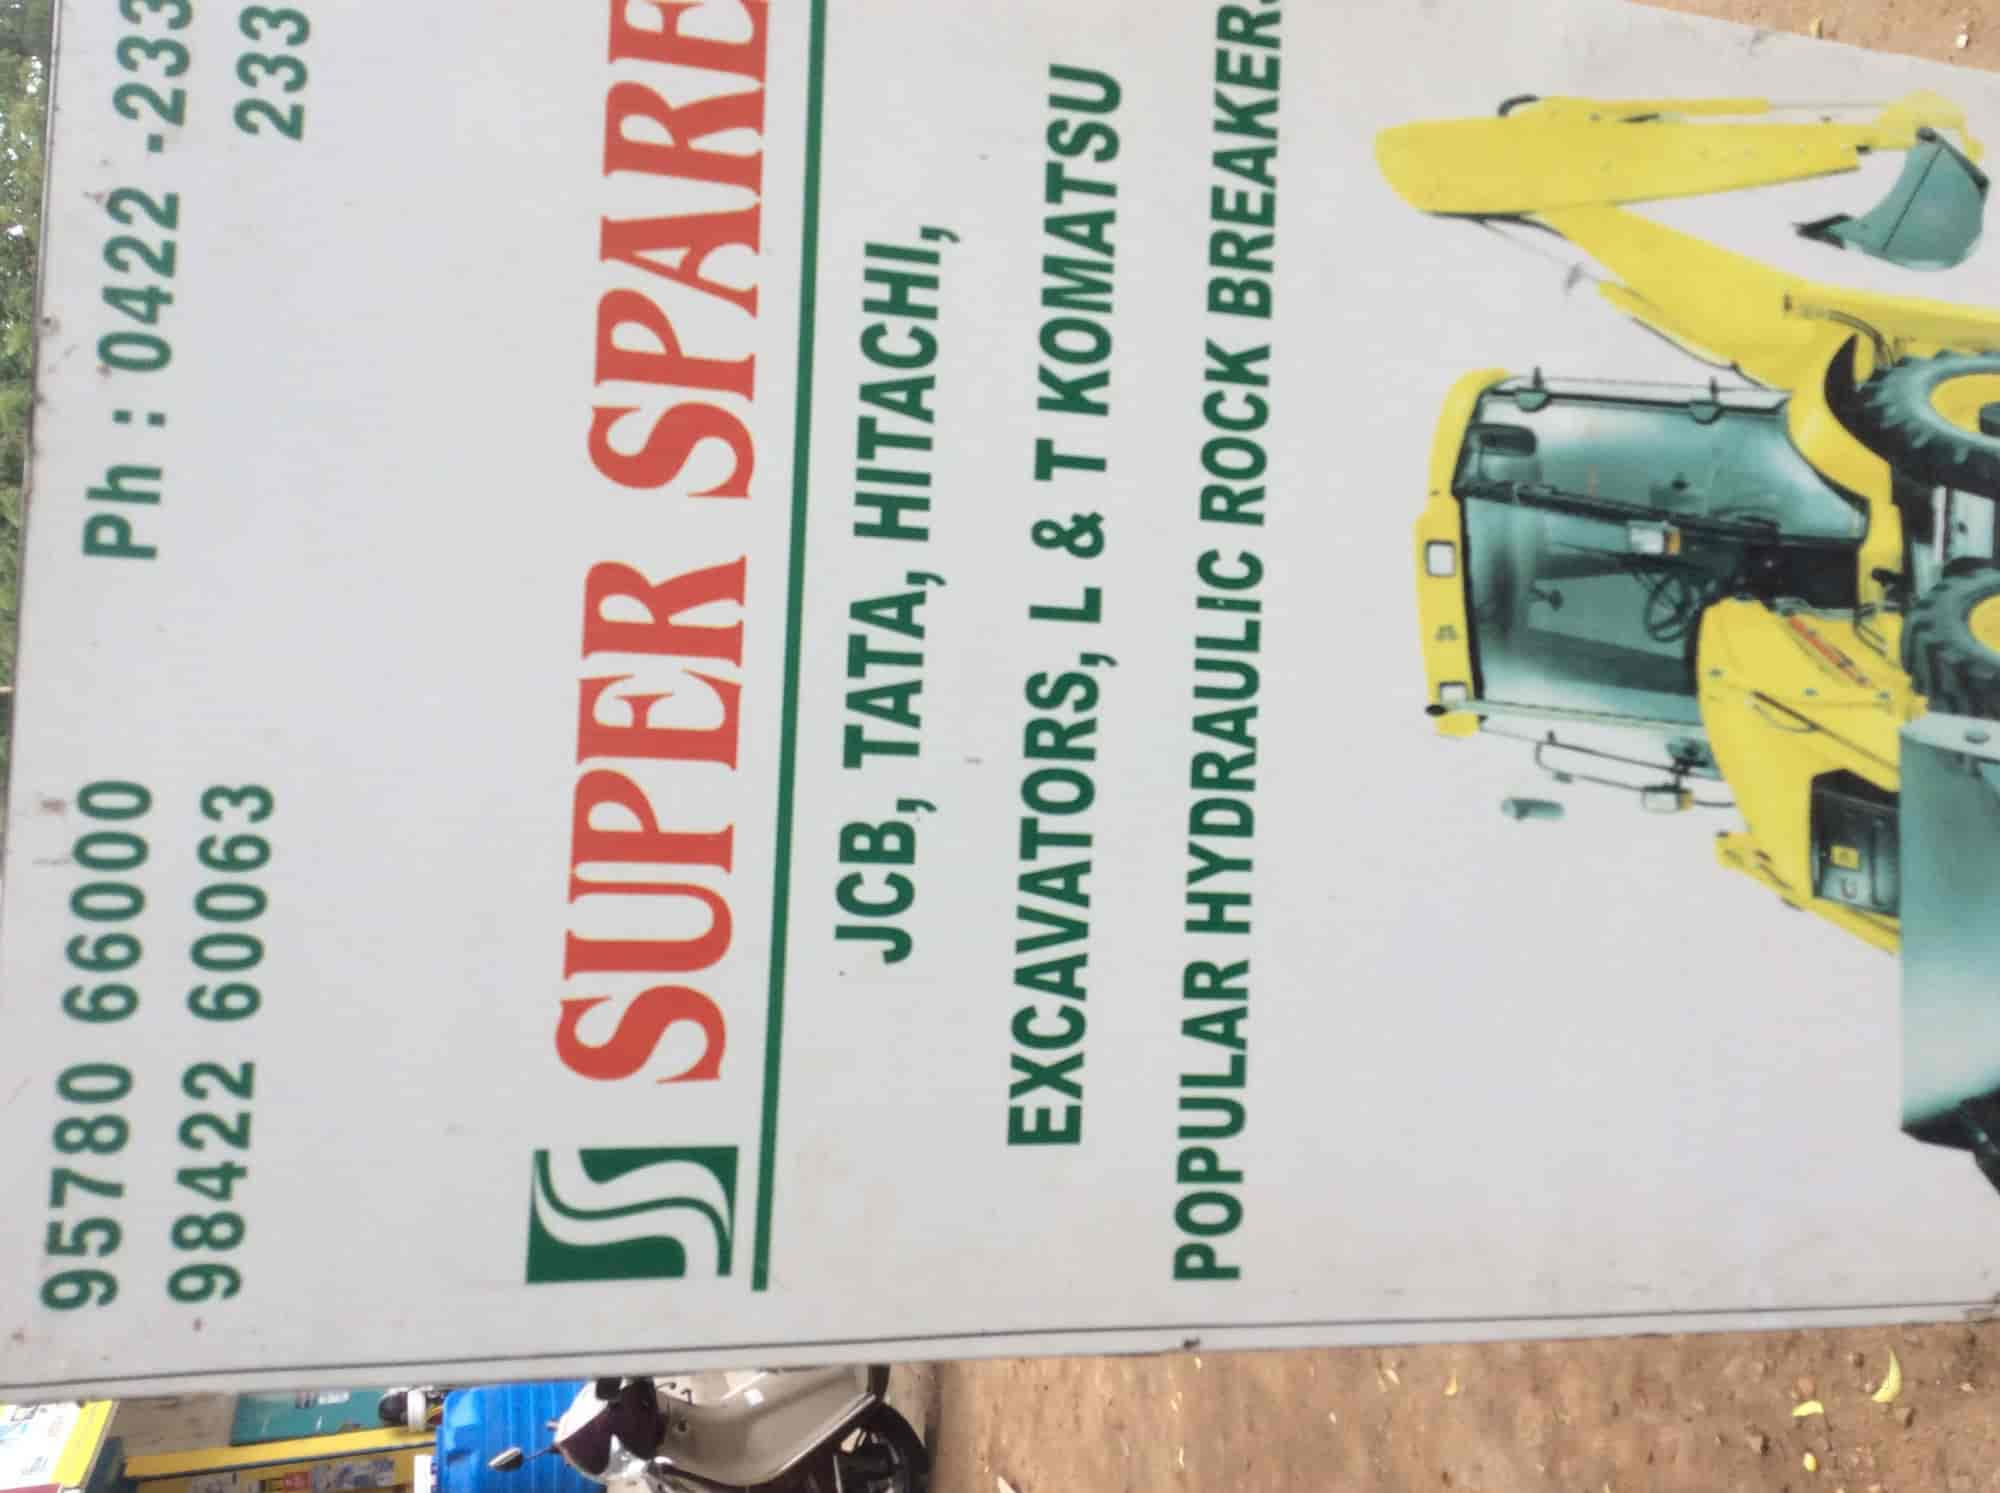 Super Spares, Rathinapuri - Earthmover Equipment Part